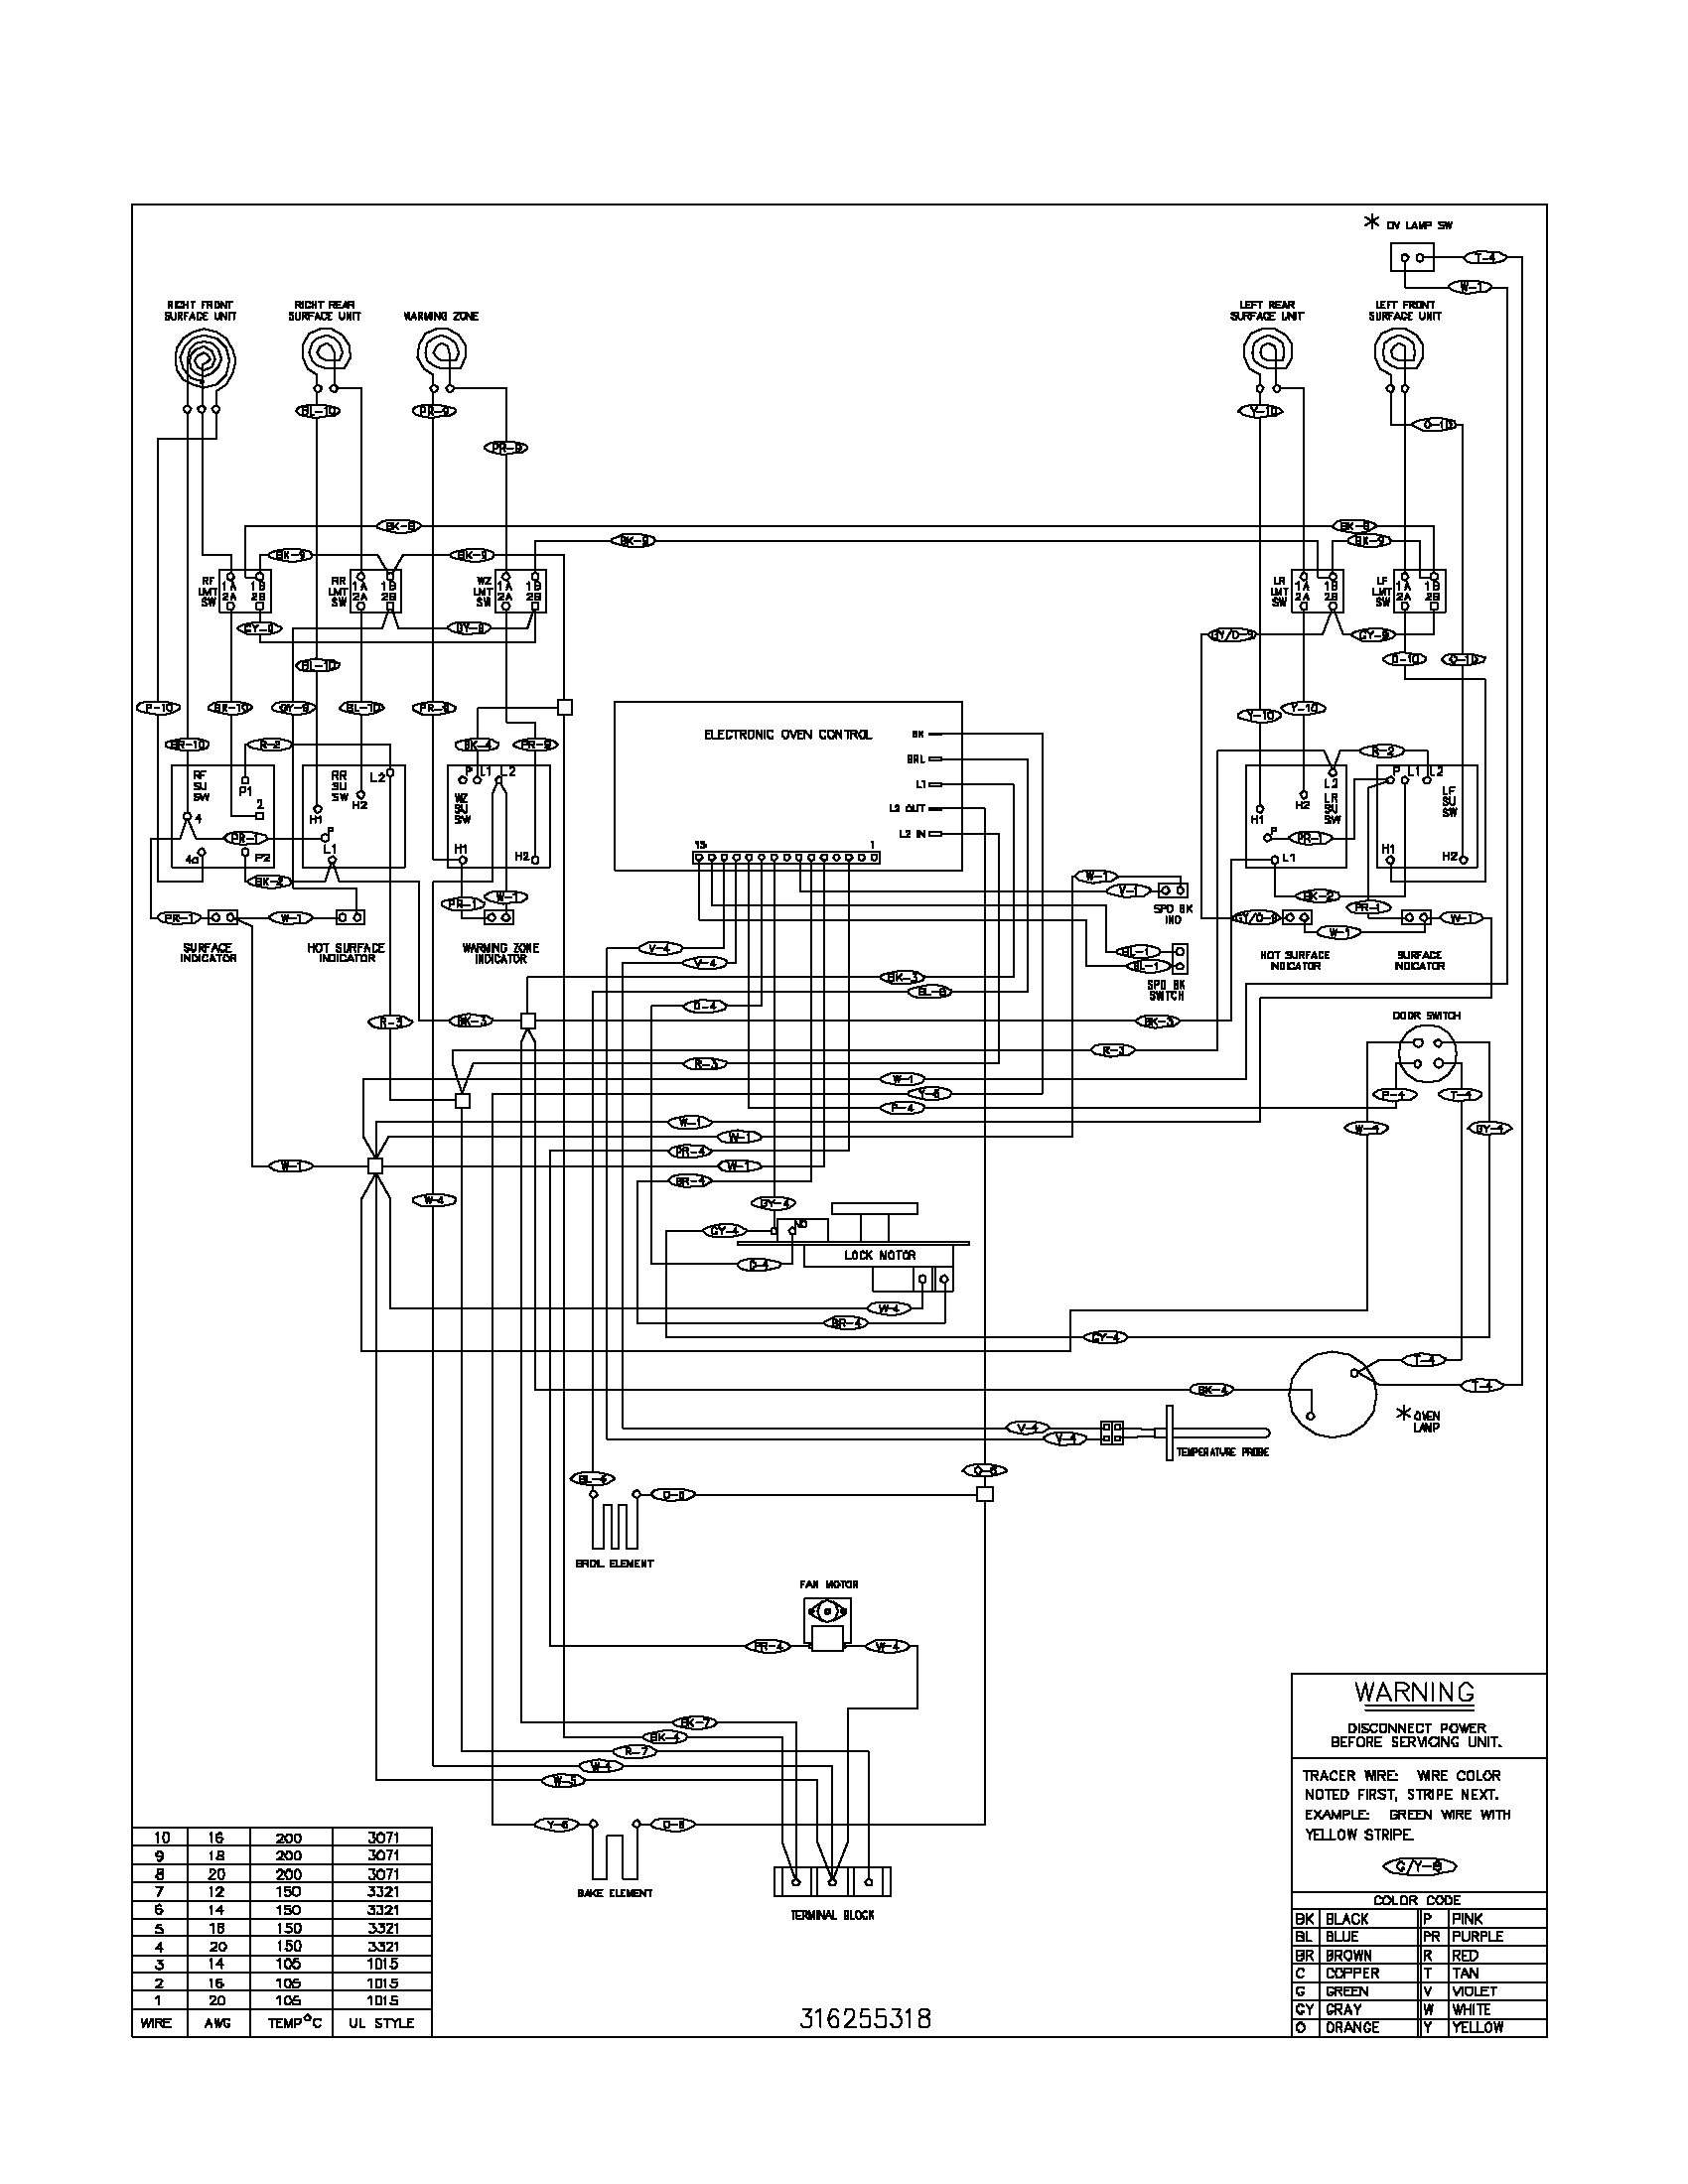 Stove Oven Wiring Diagram